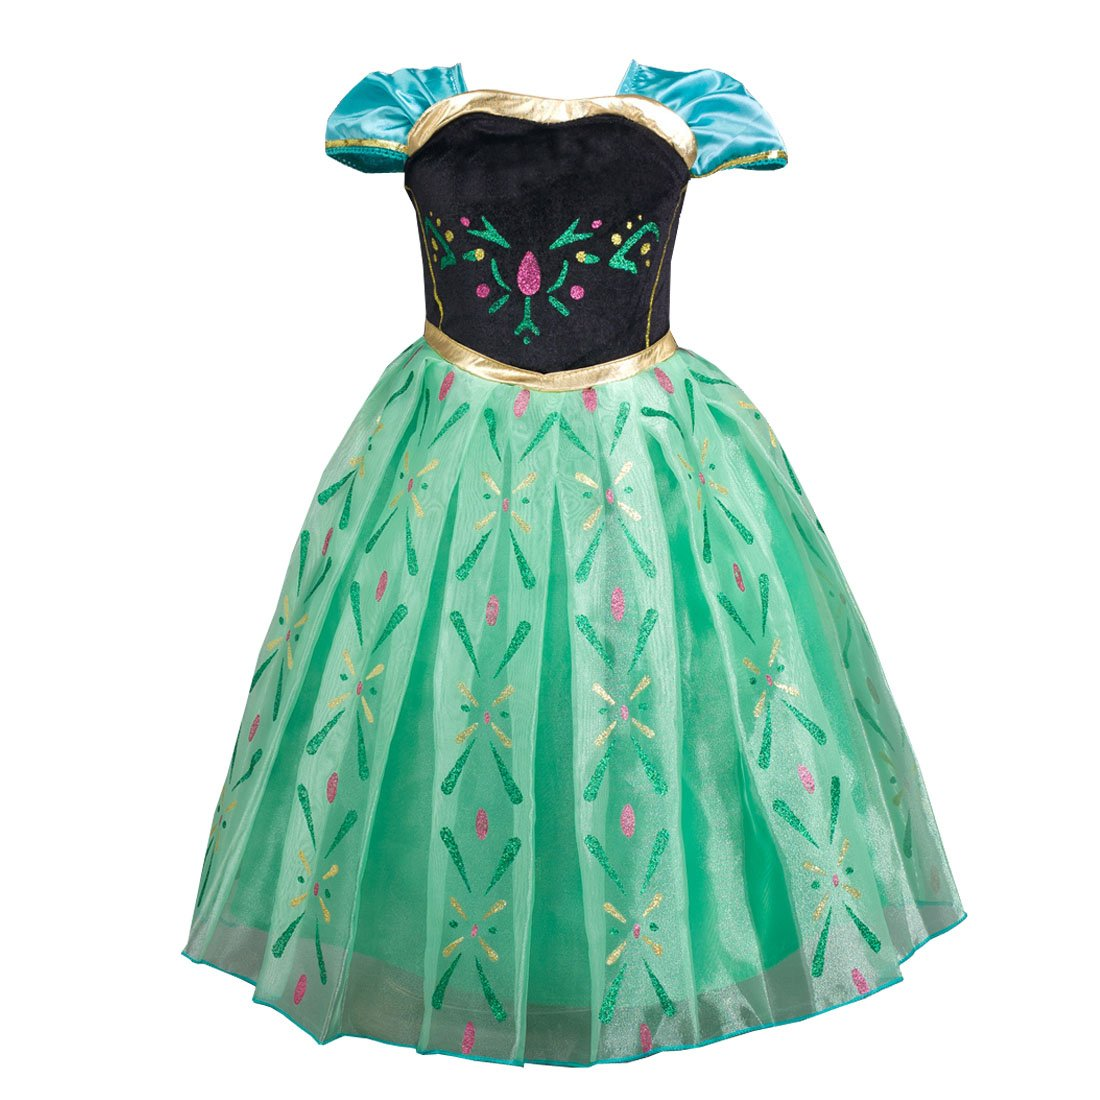 Girl's Short Sleeve Princess Dress up Halloween Christmas Cosplay Costume Fancy Party Summer Dress 8-9 years old